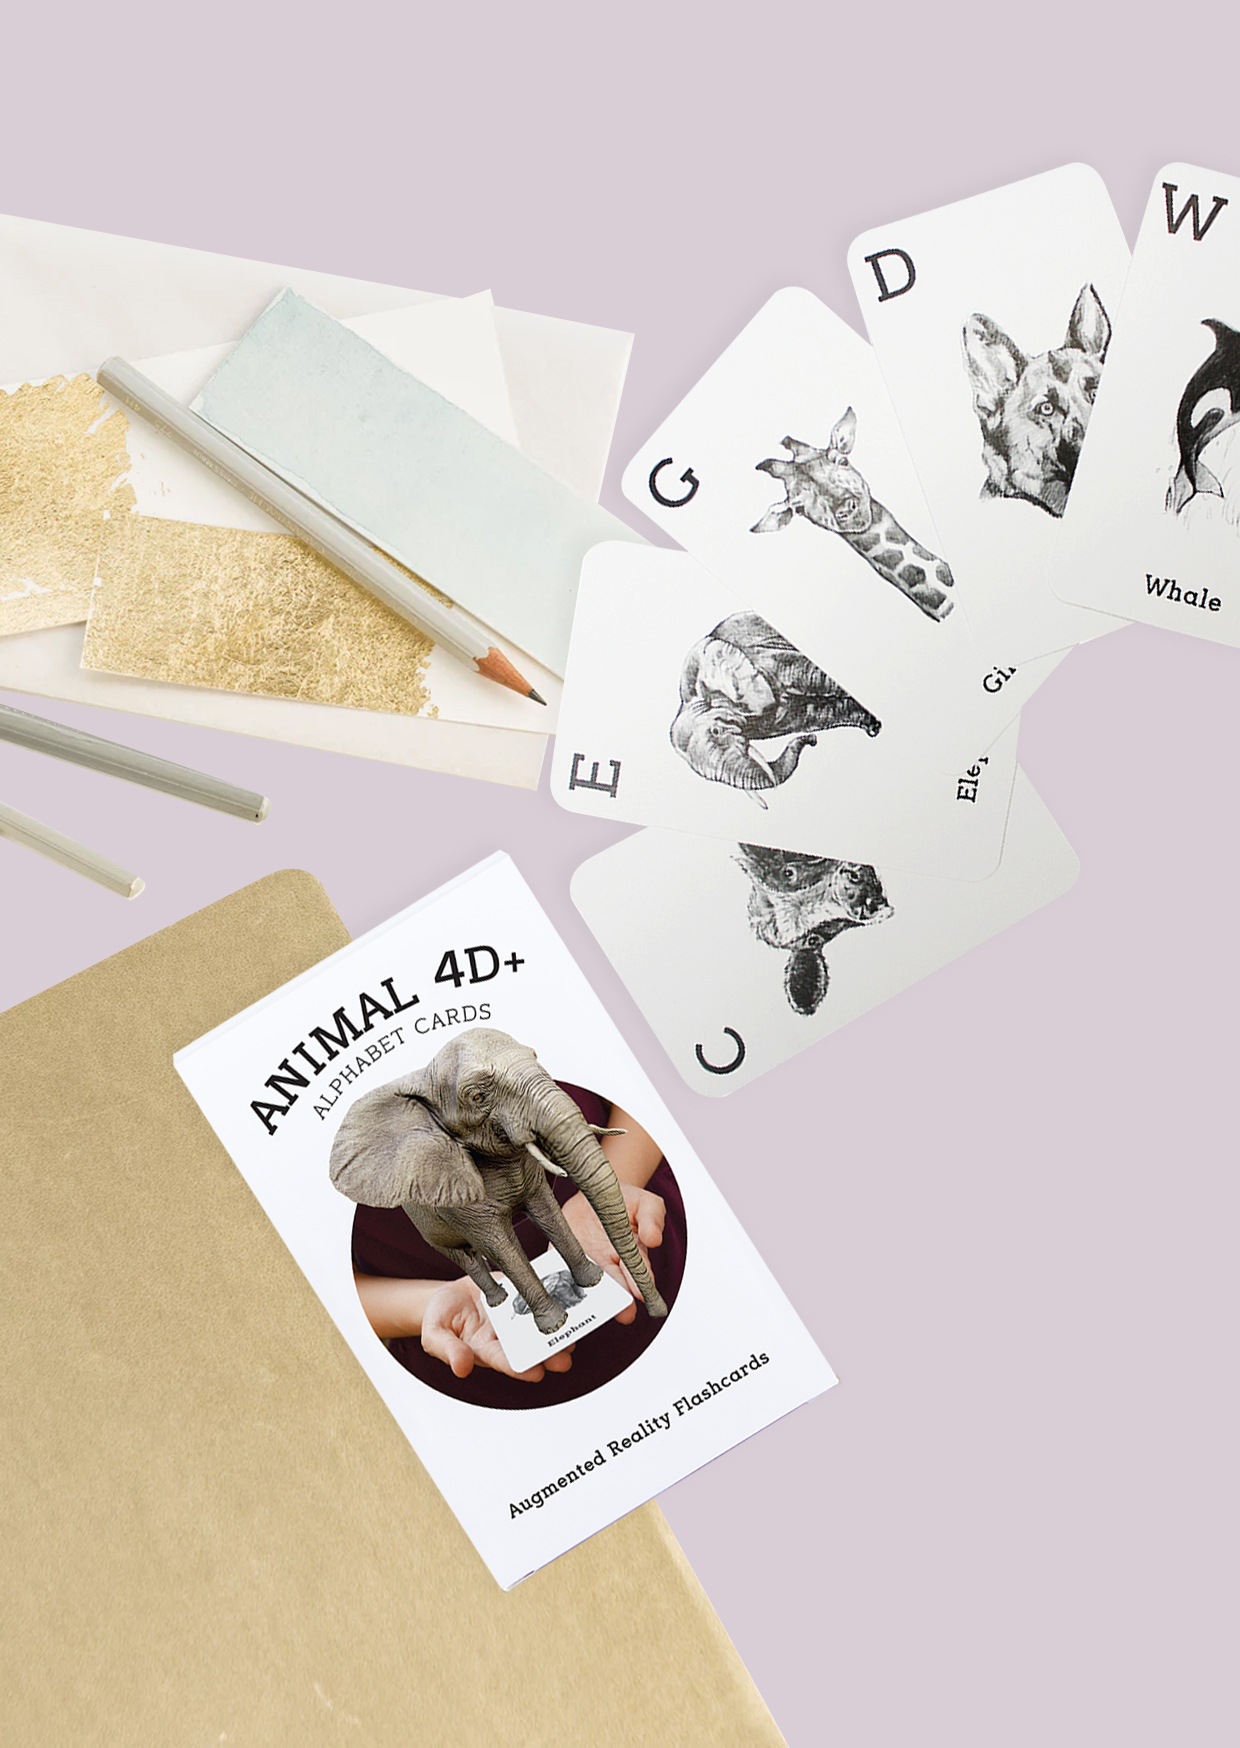 Flashcard for Kids – Digging the Utilization of Flashcards for Kids Deeper | By Octagon Studio